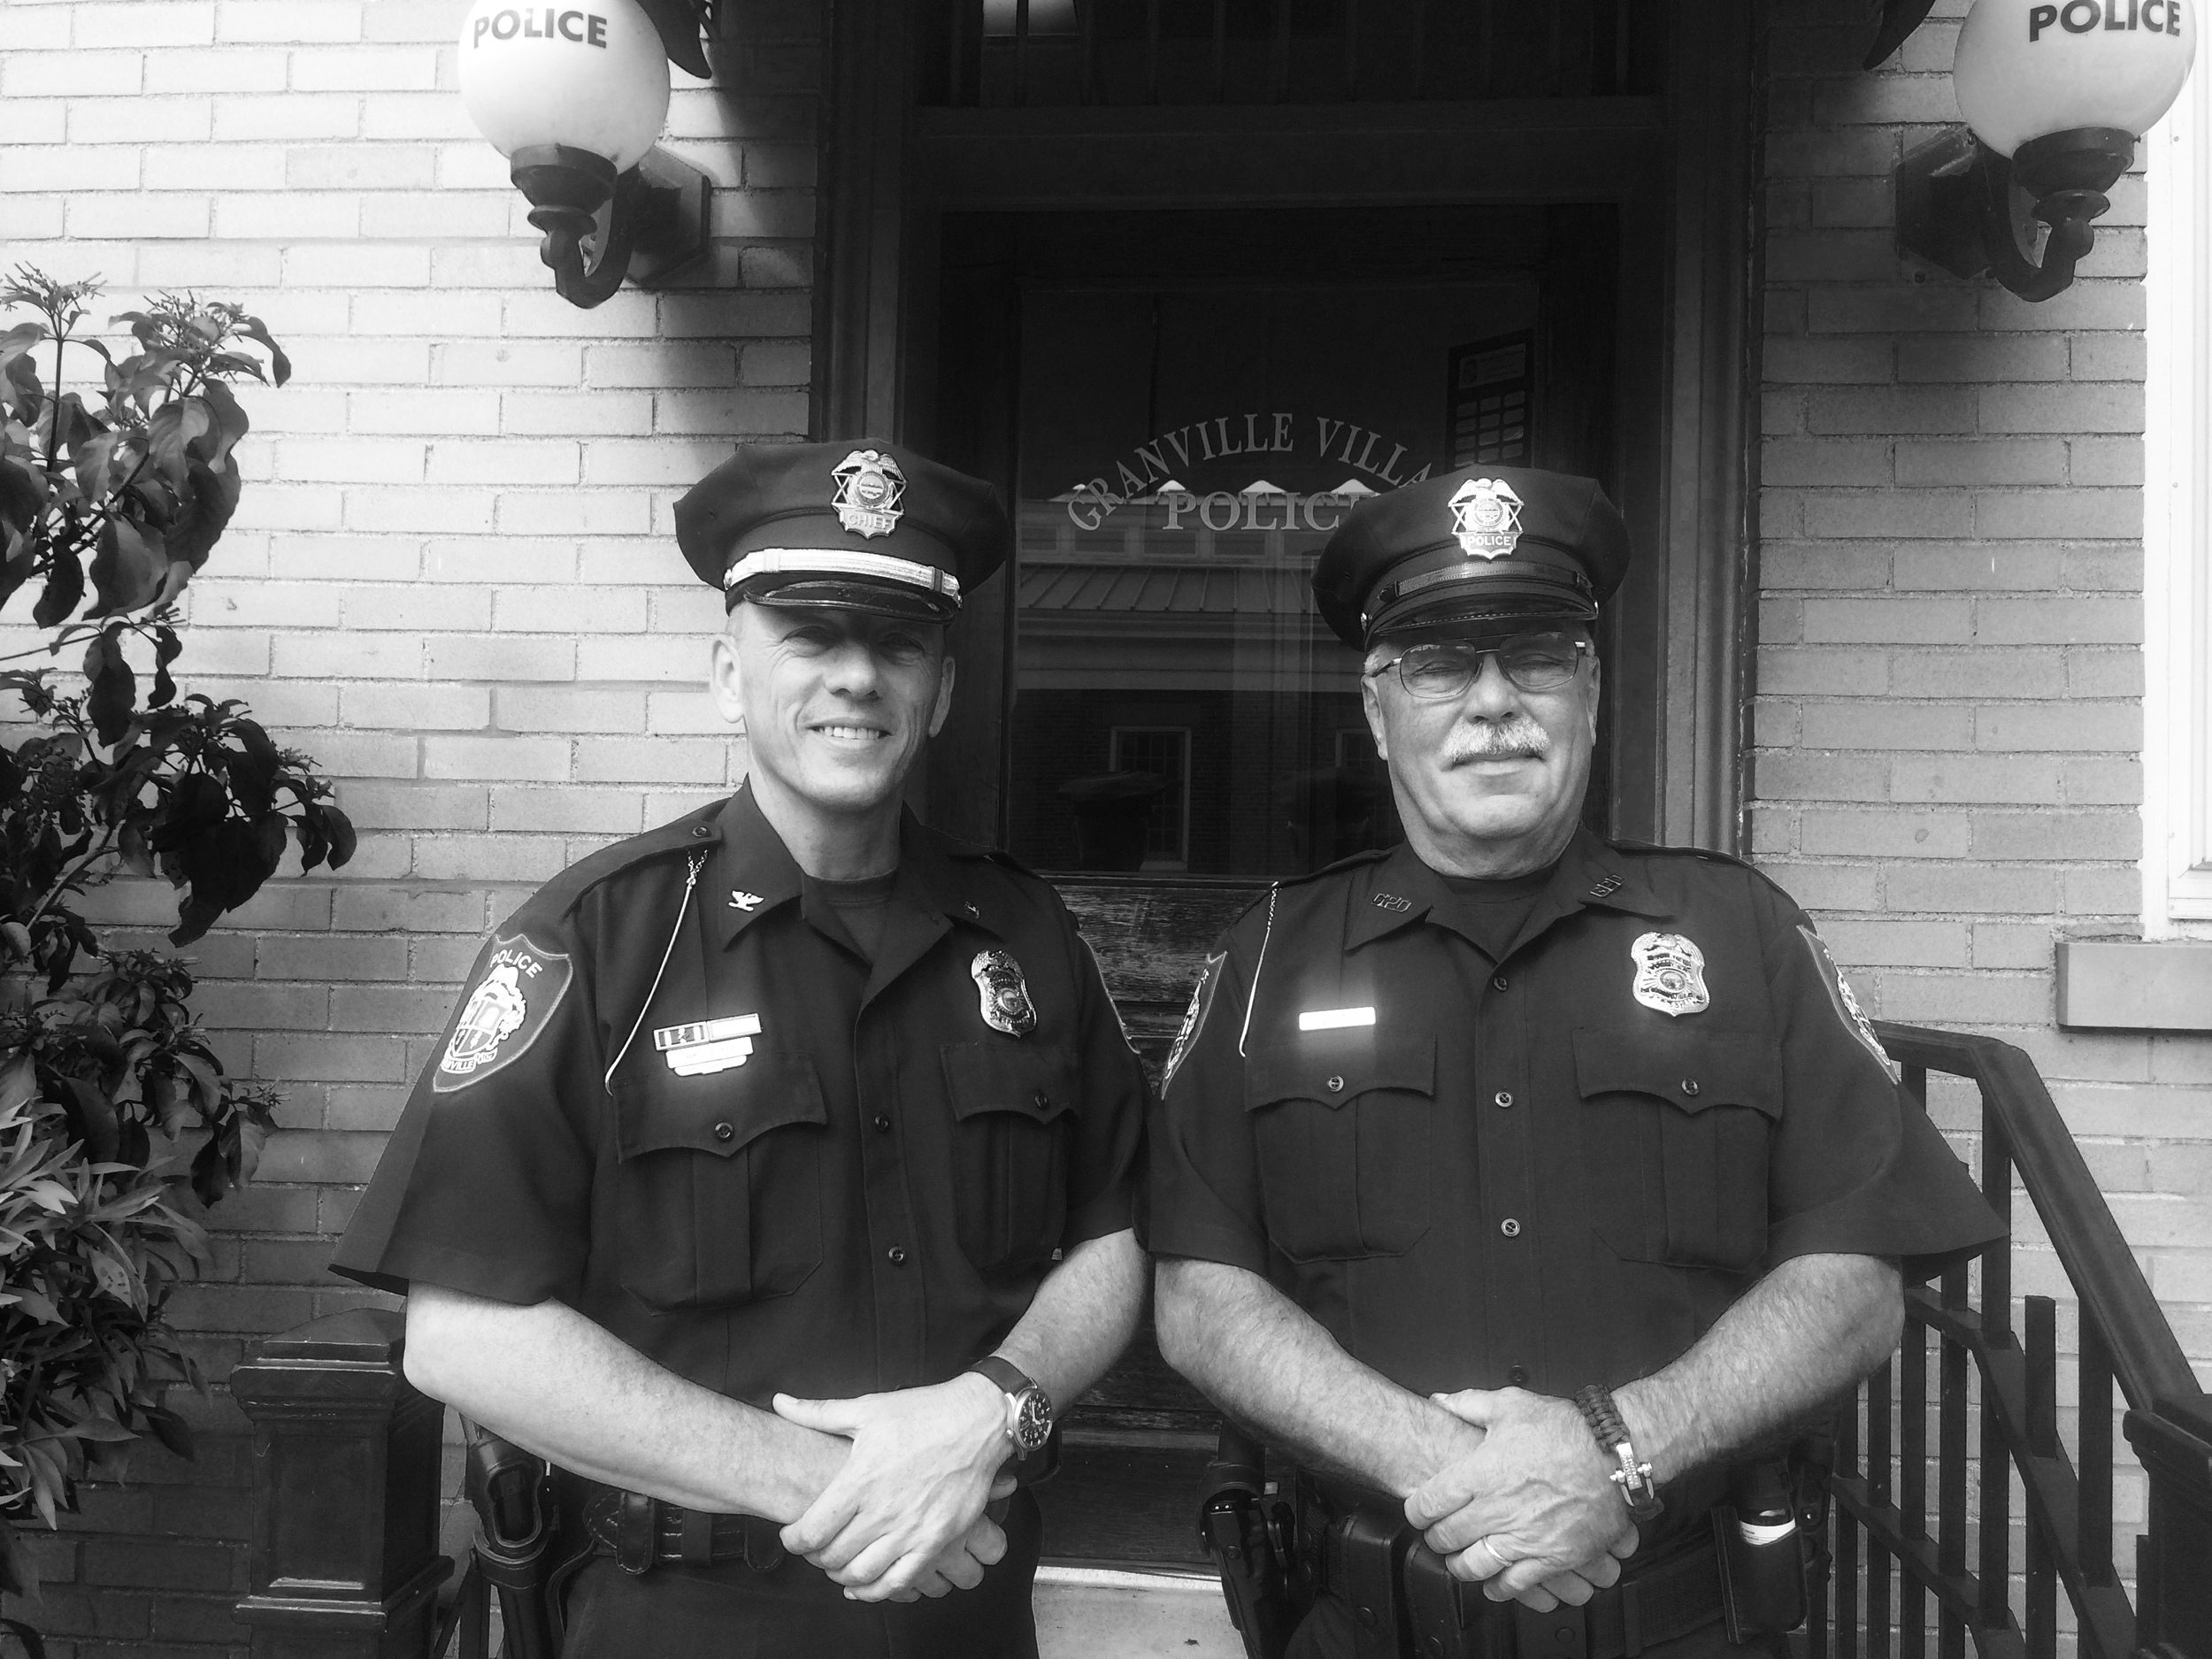 Two Granville officers in front of the Police Station, summer 2015